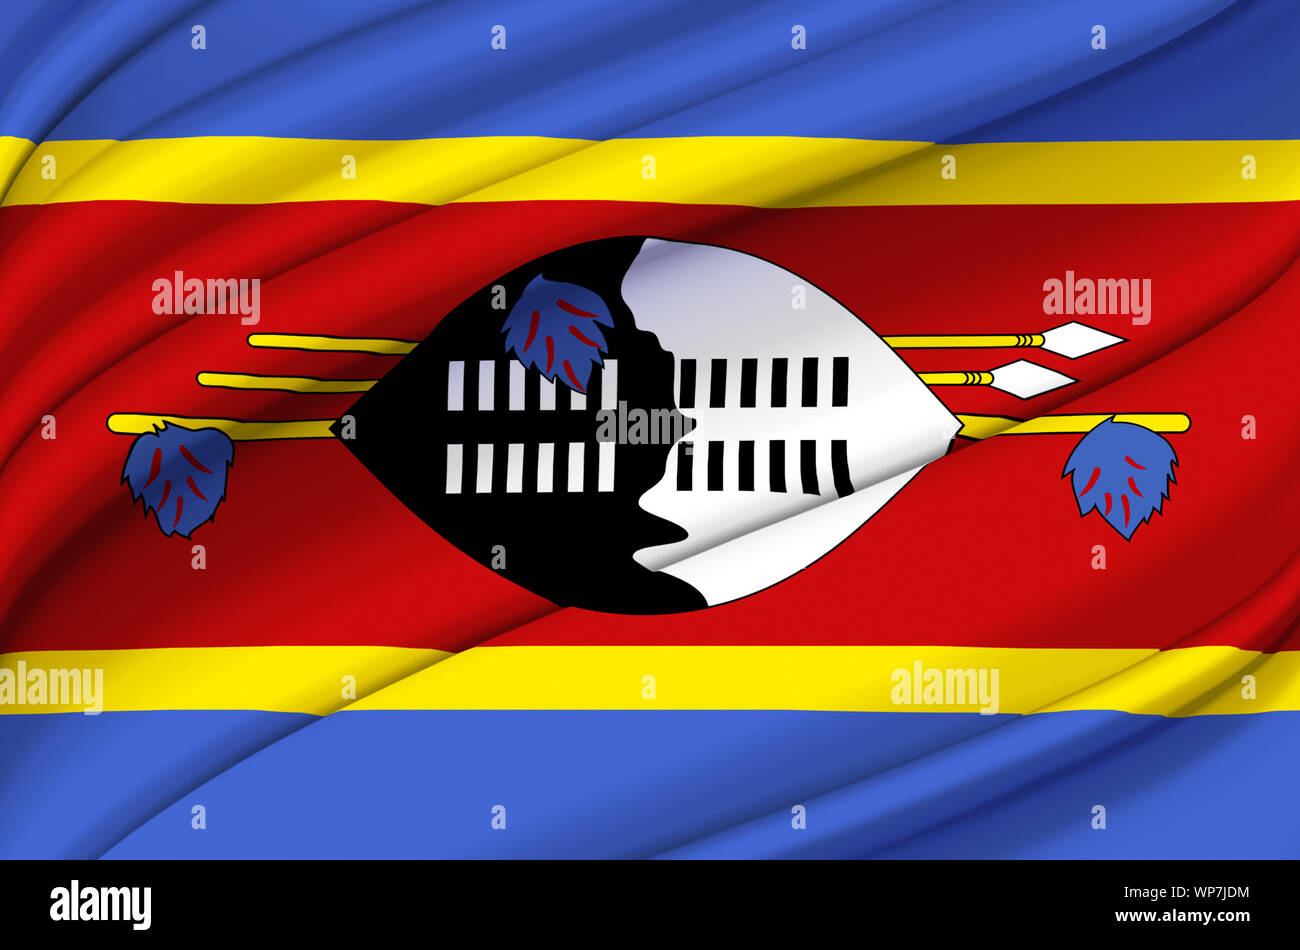 Swaziland waving flag illustration. Countries of Africa. Perfect for background and texture usage. Stock Photo